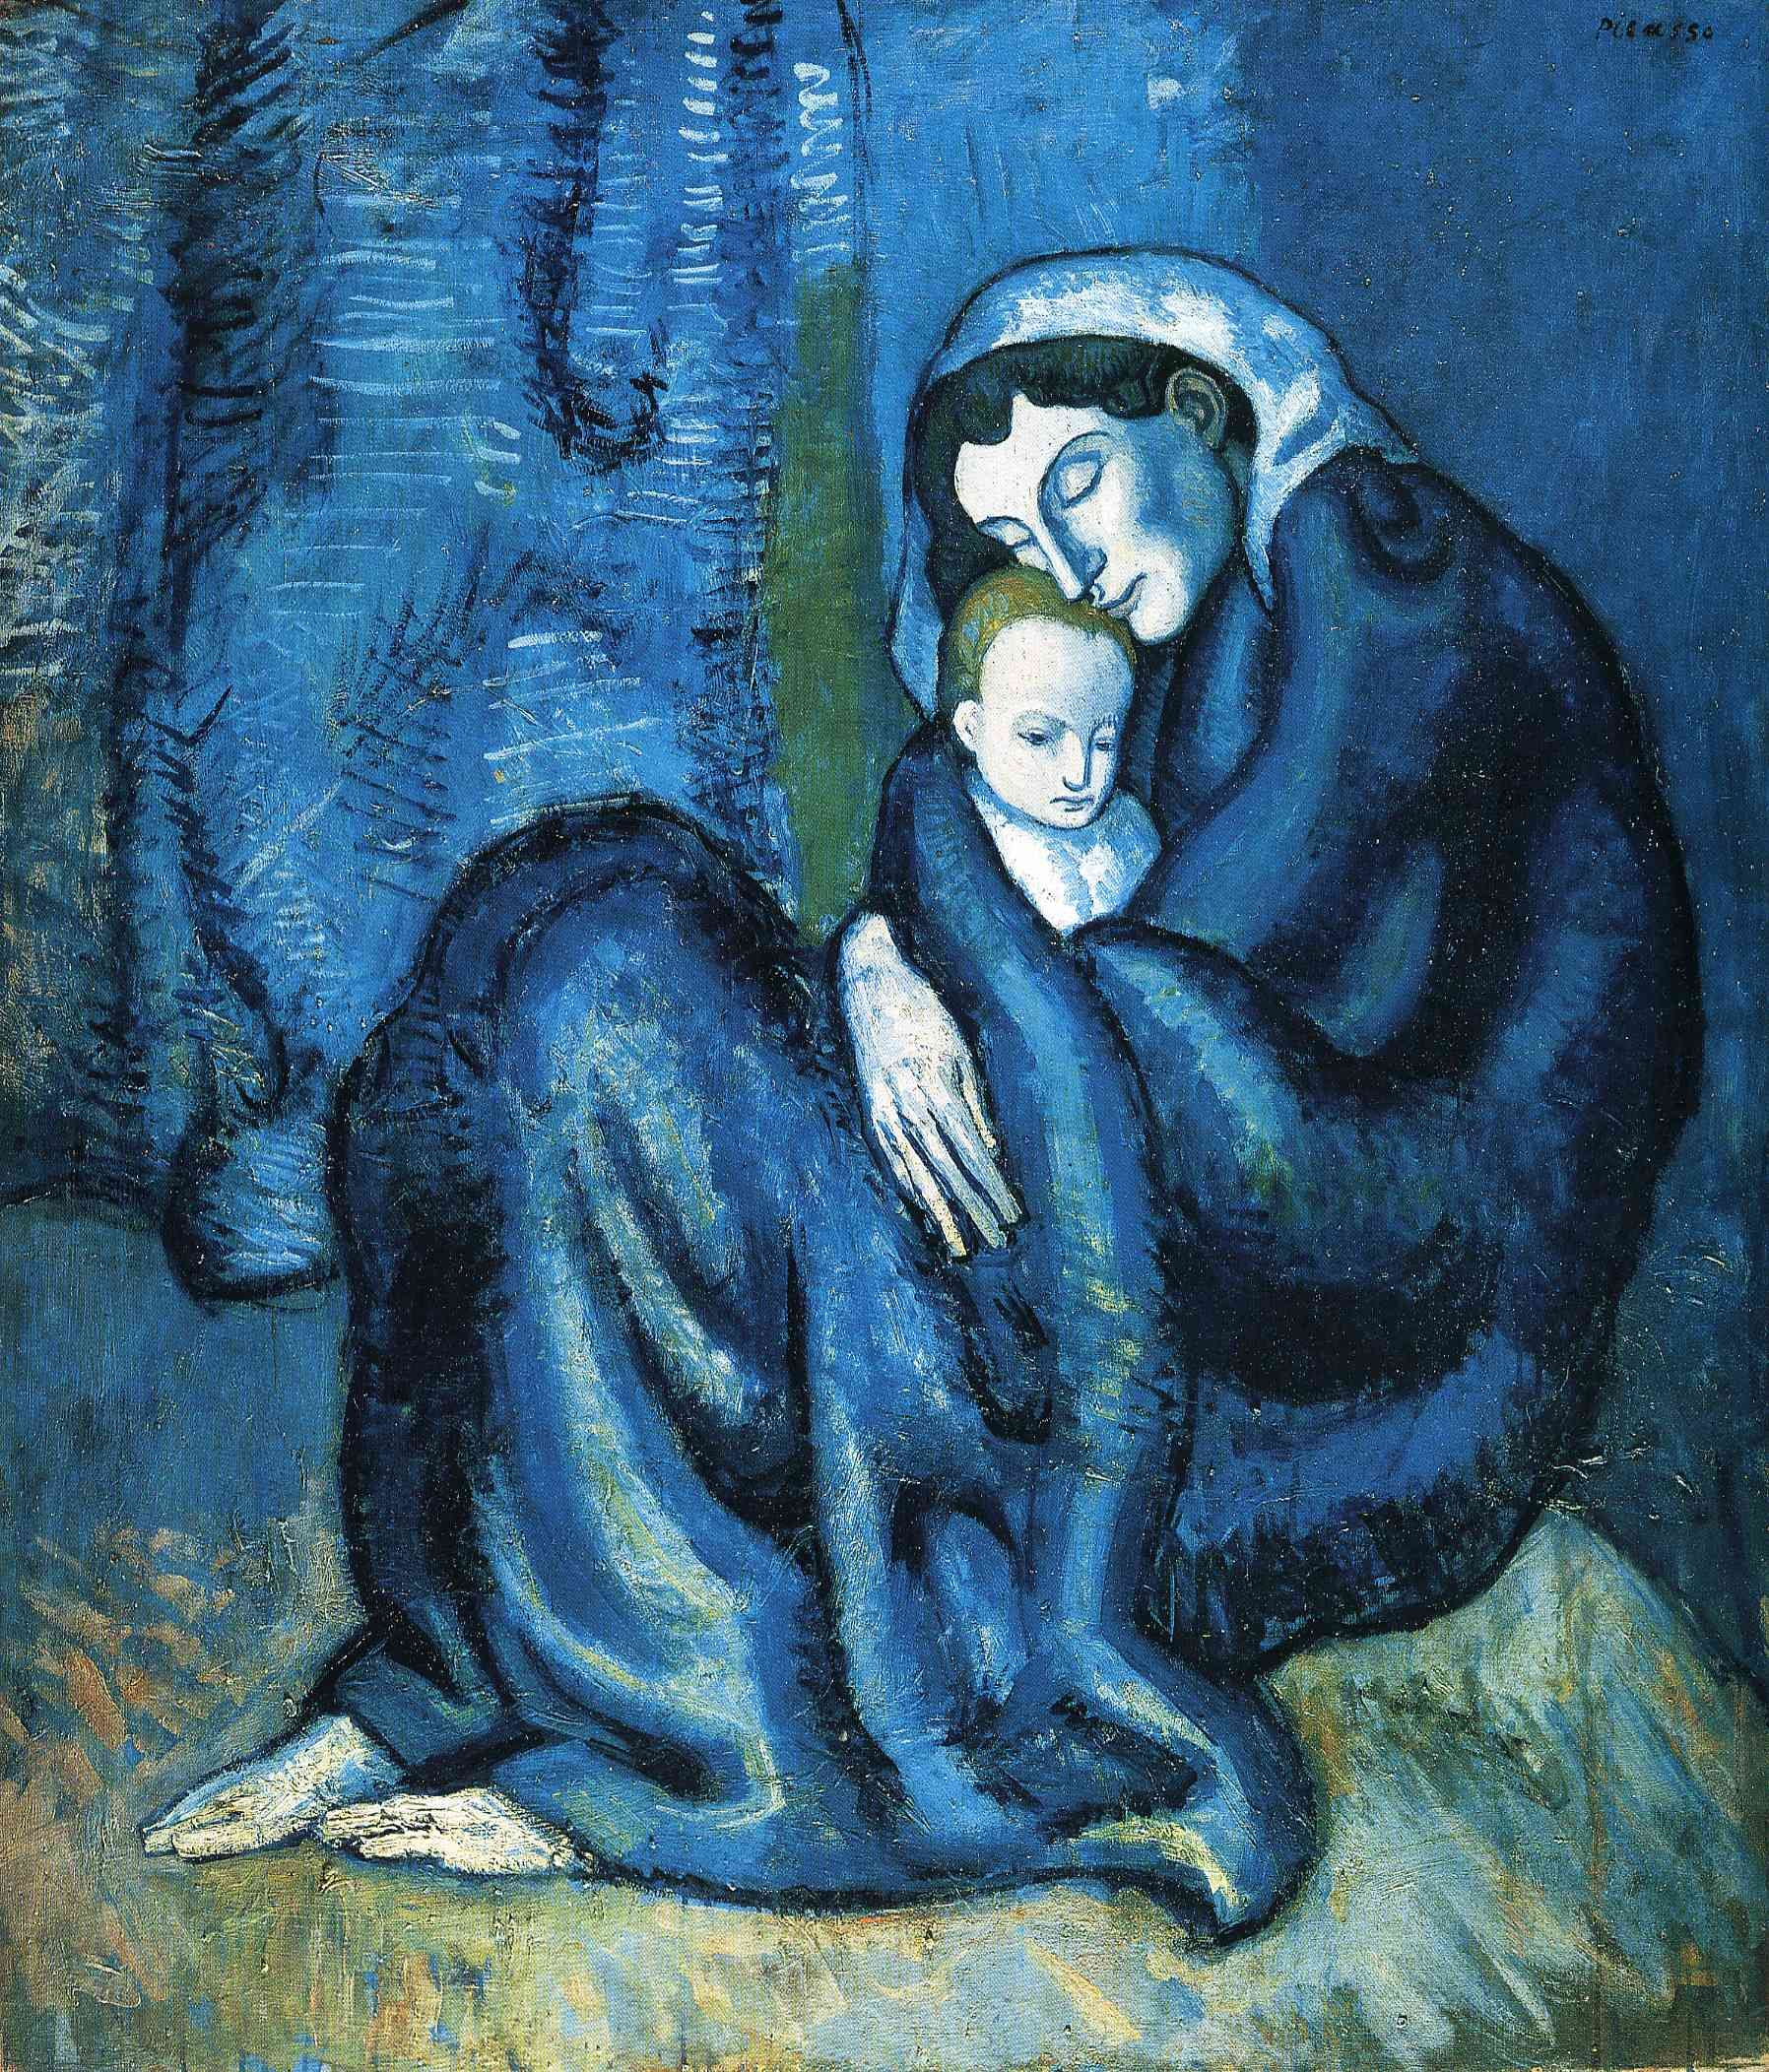 Mother and child - Pablo Picasso | Art | Pinterest | Pablo picasso ...